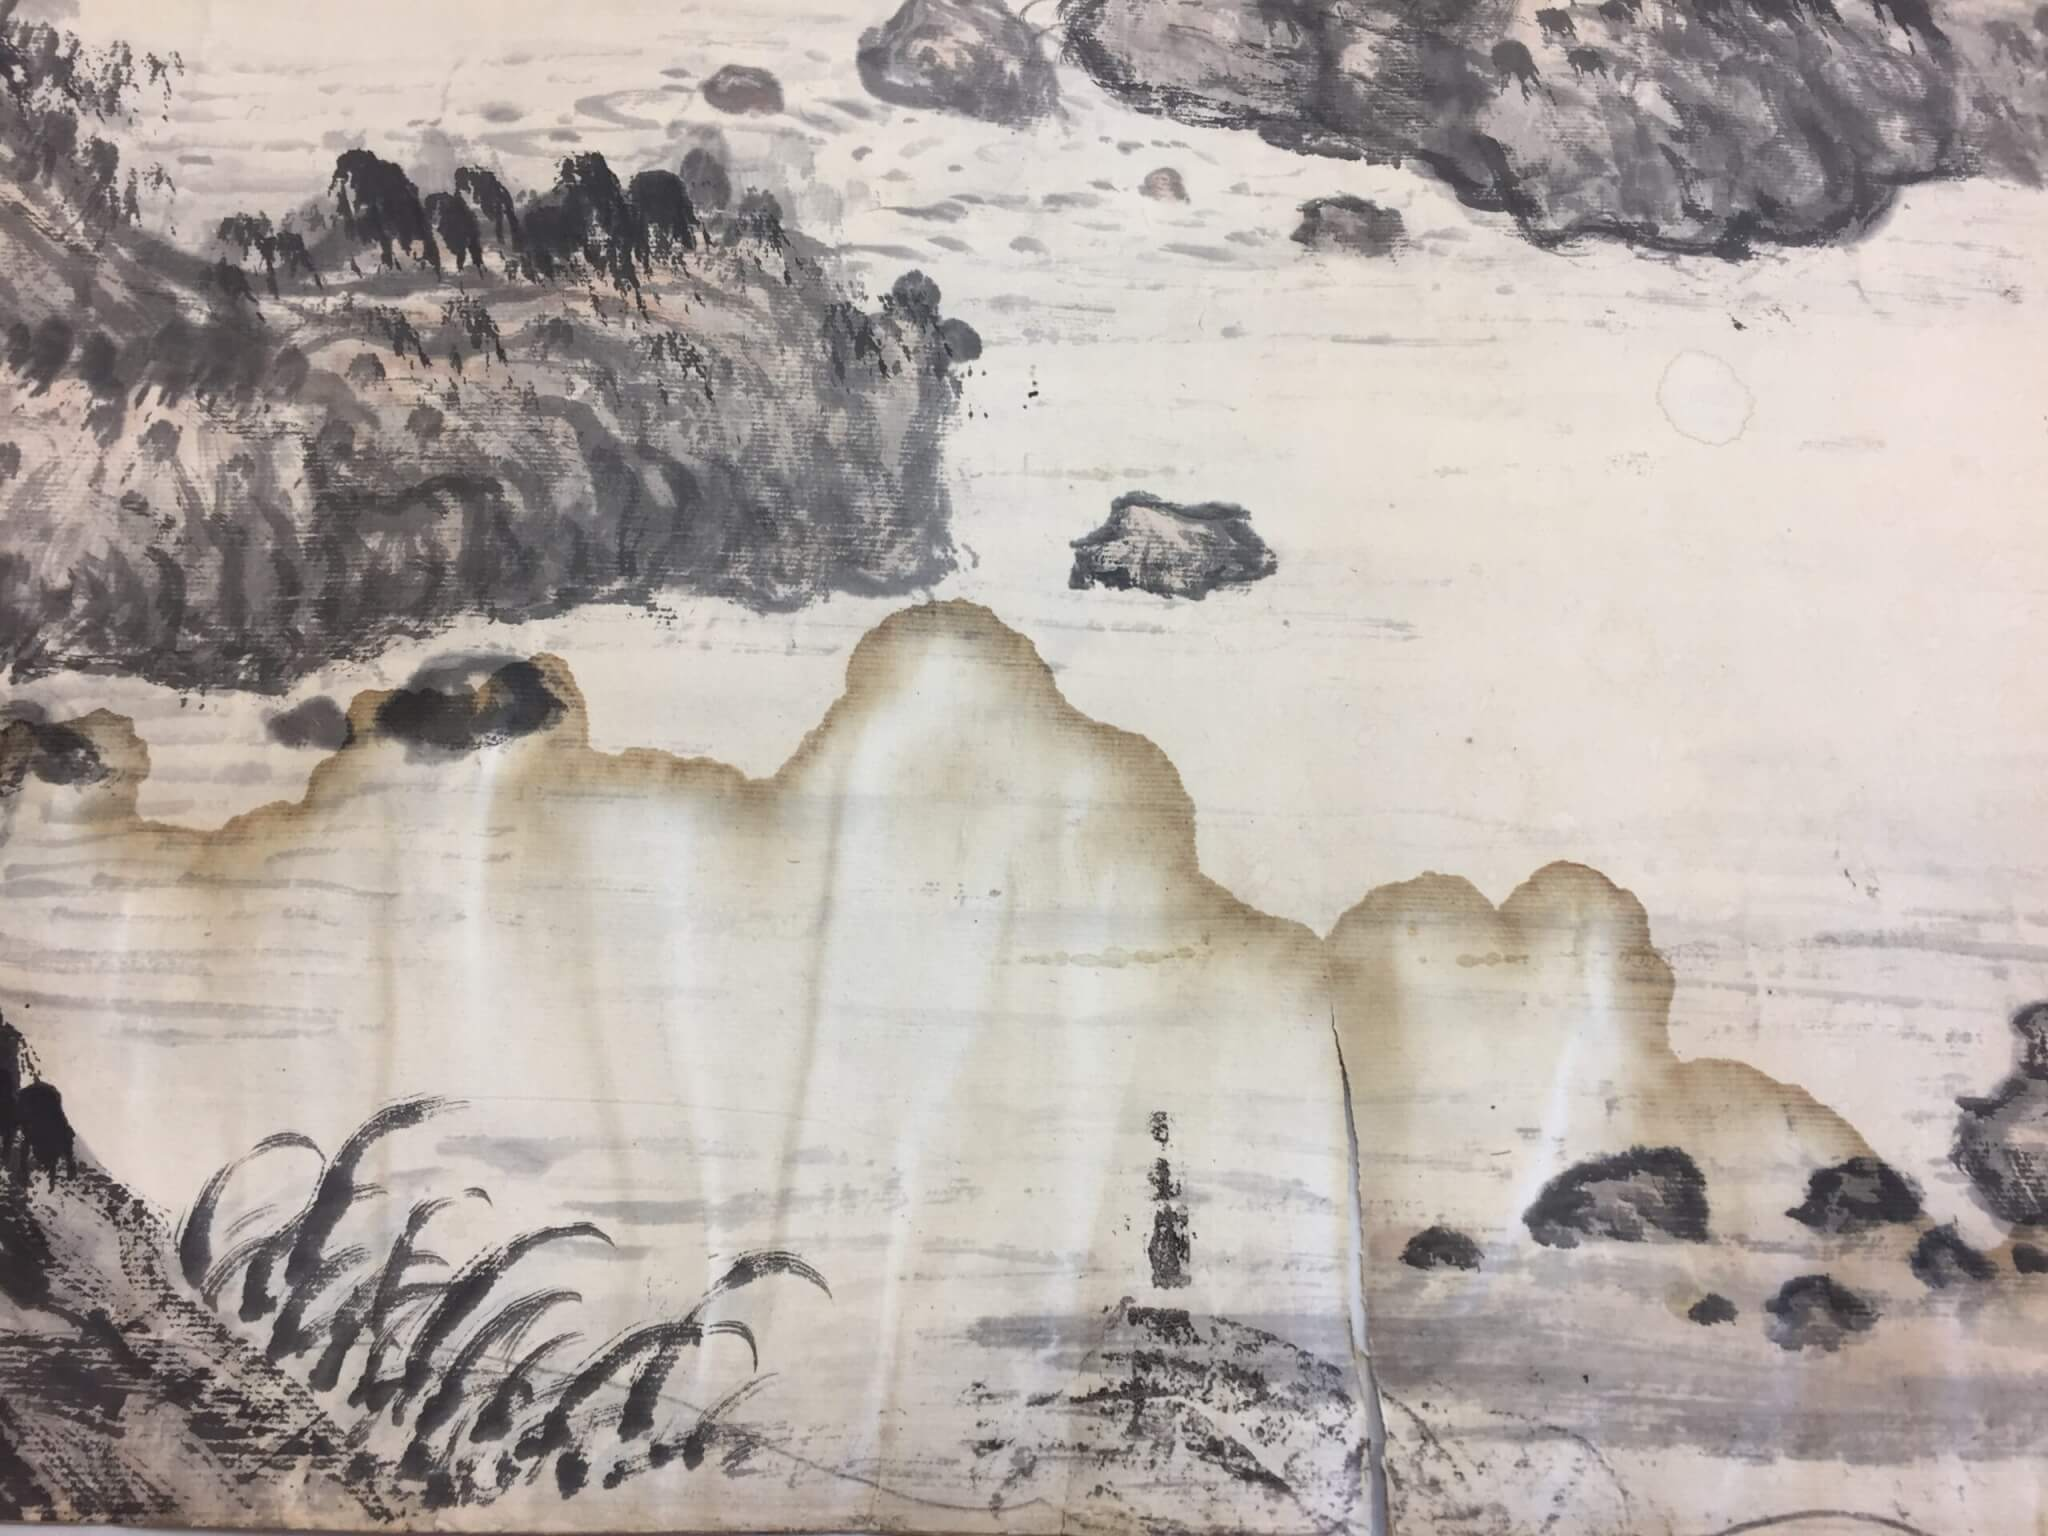 Conservation treatment of an ink drawing on paper, water damage restoration, works on paper, fine art, ink wash, documents, watercolor, gouache, newspapers, documents, books